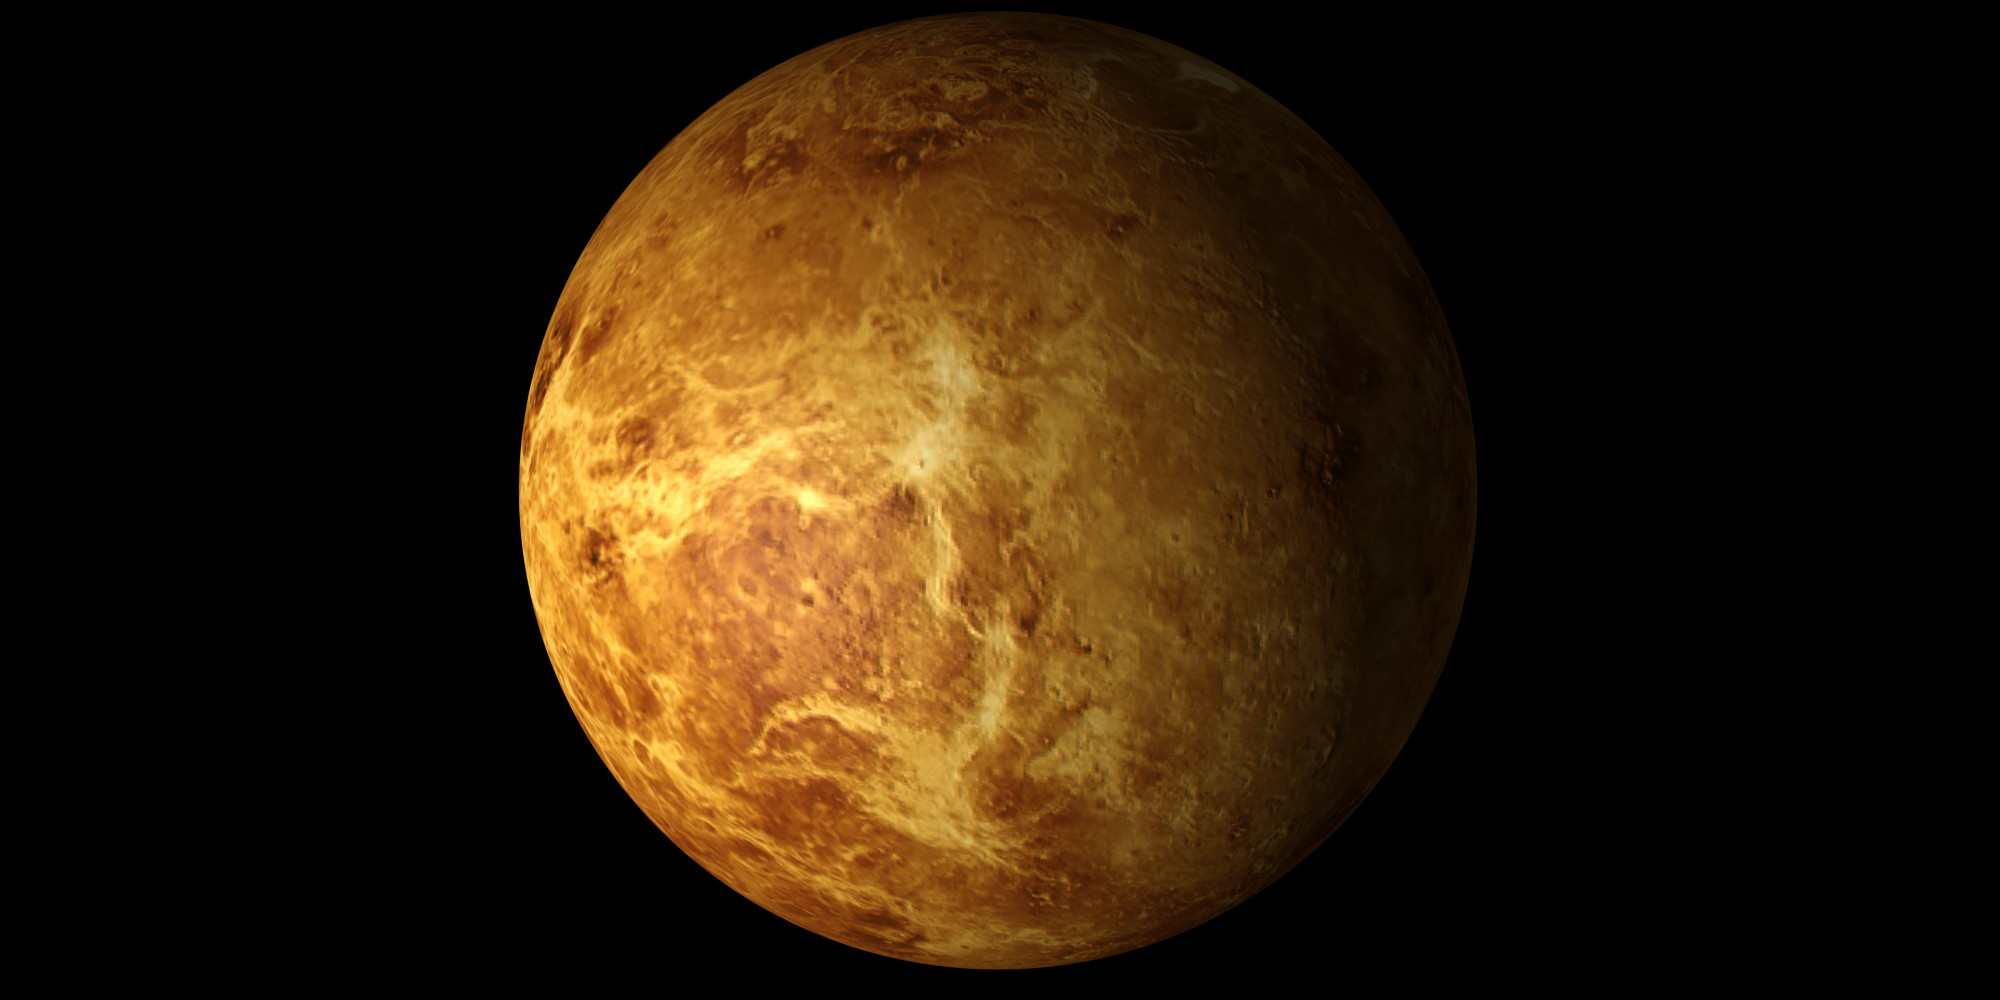 Venus once could have entire oceans of water